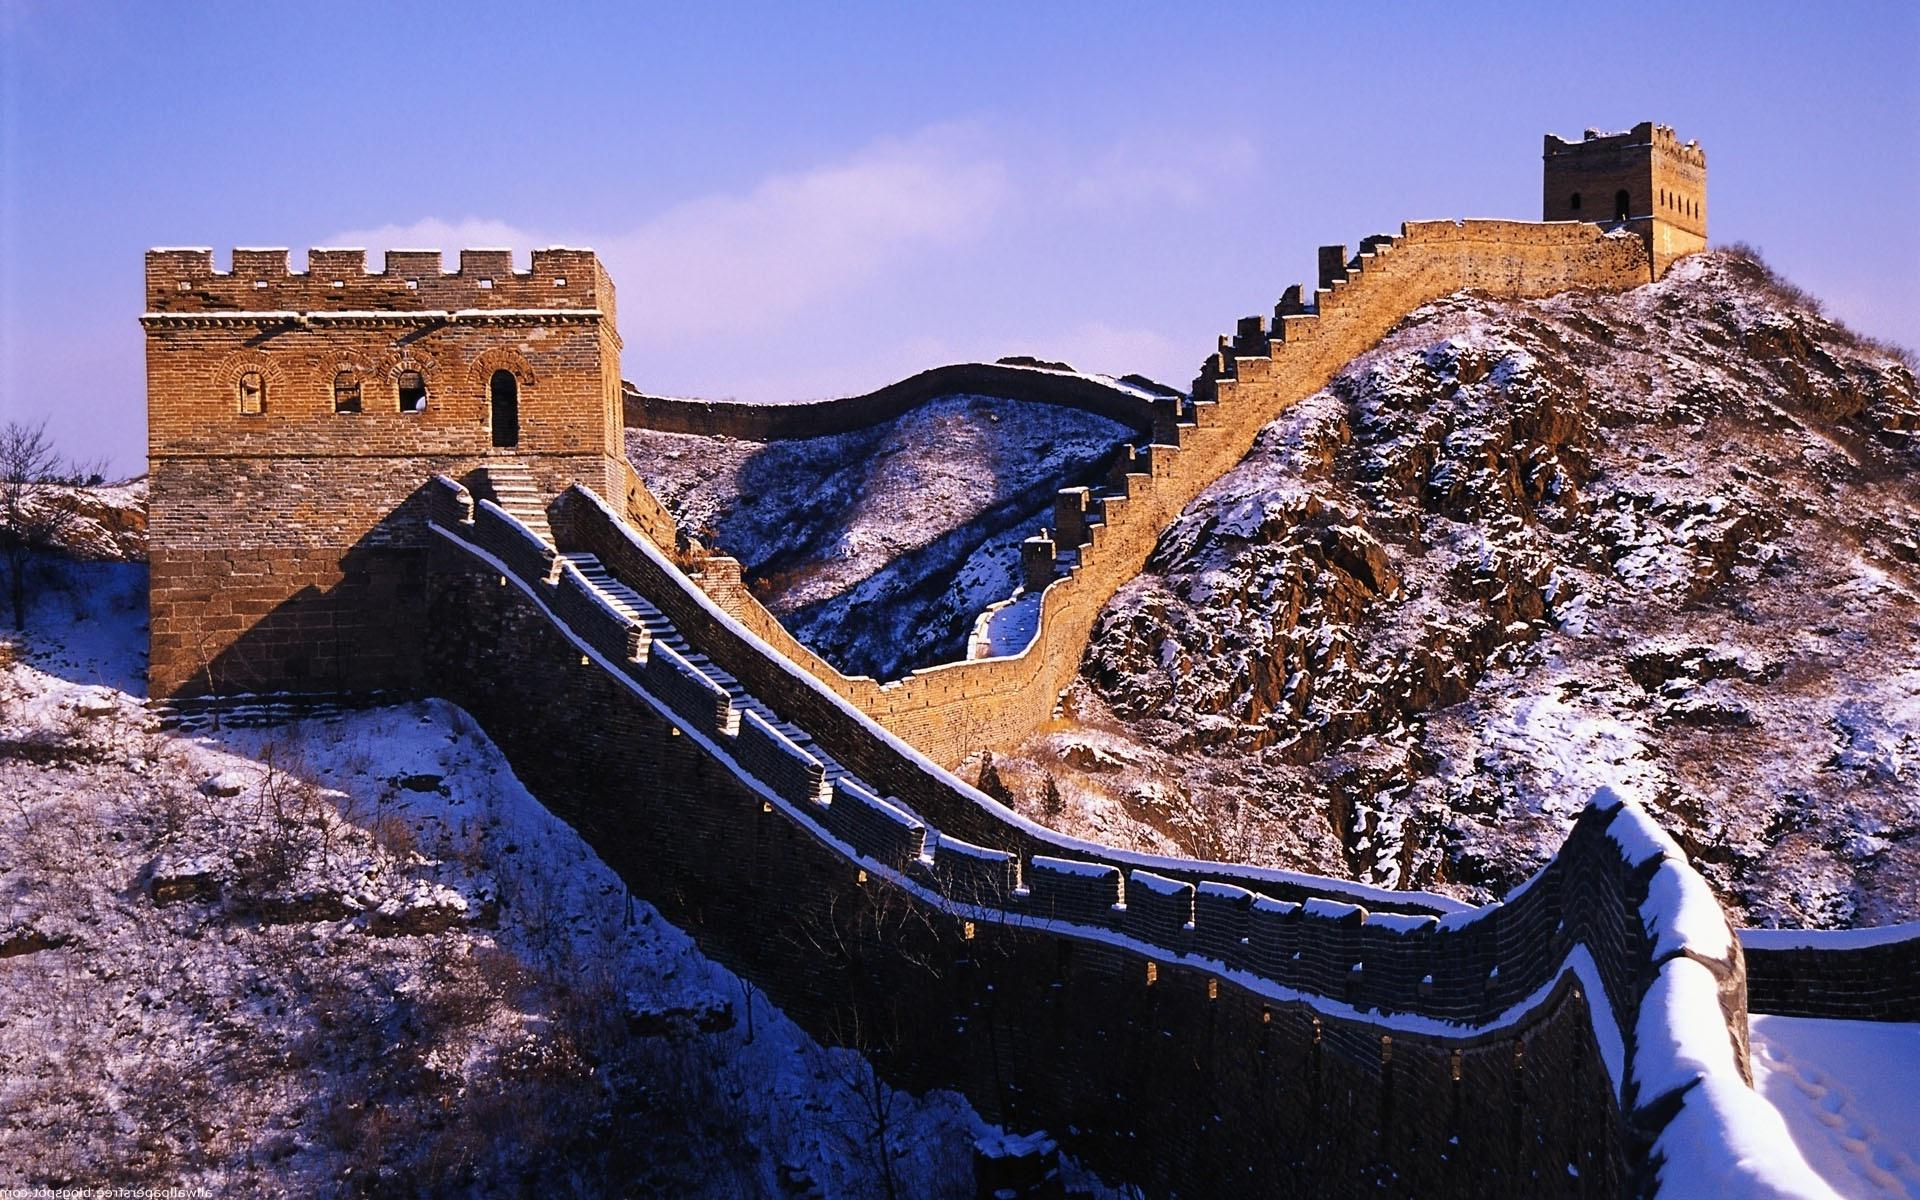 Top Rated High HD Quality Great Wall Of China Image